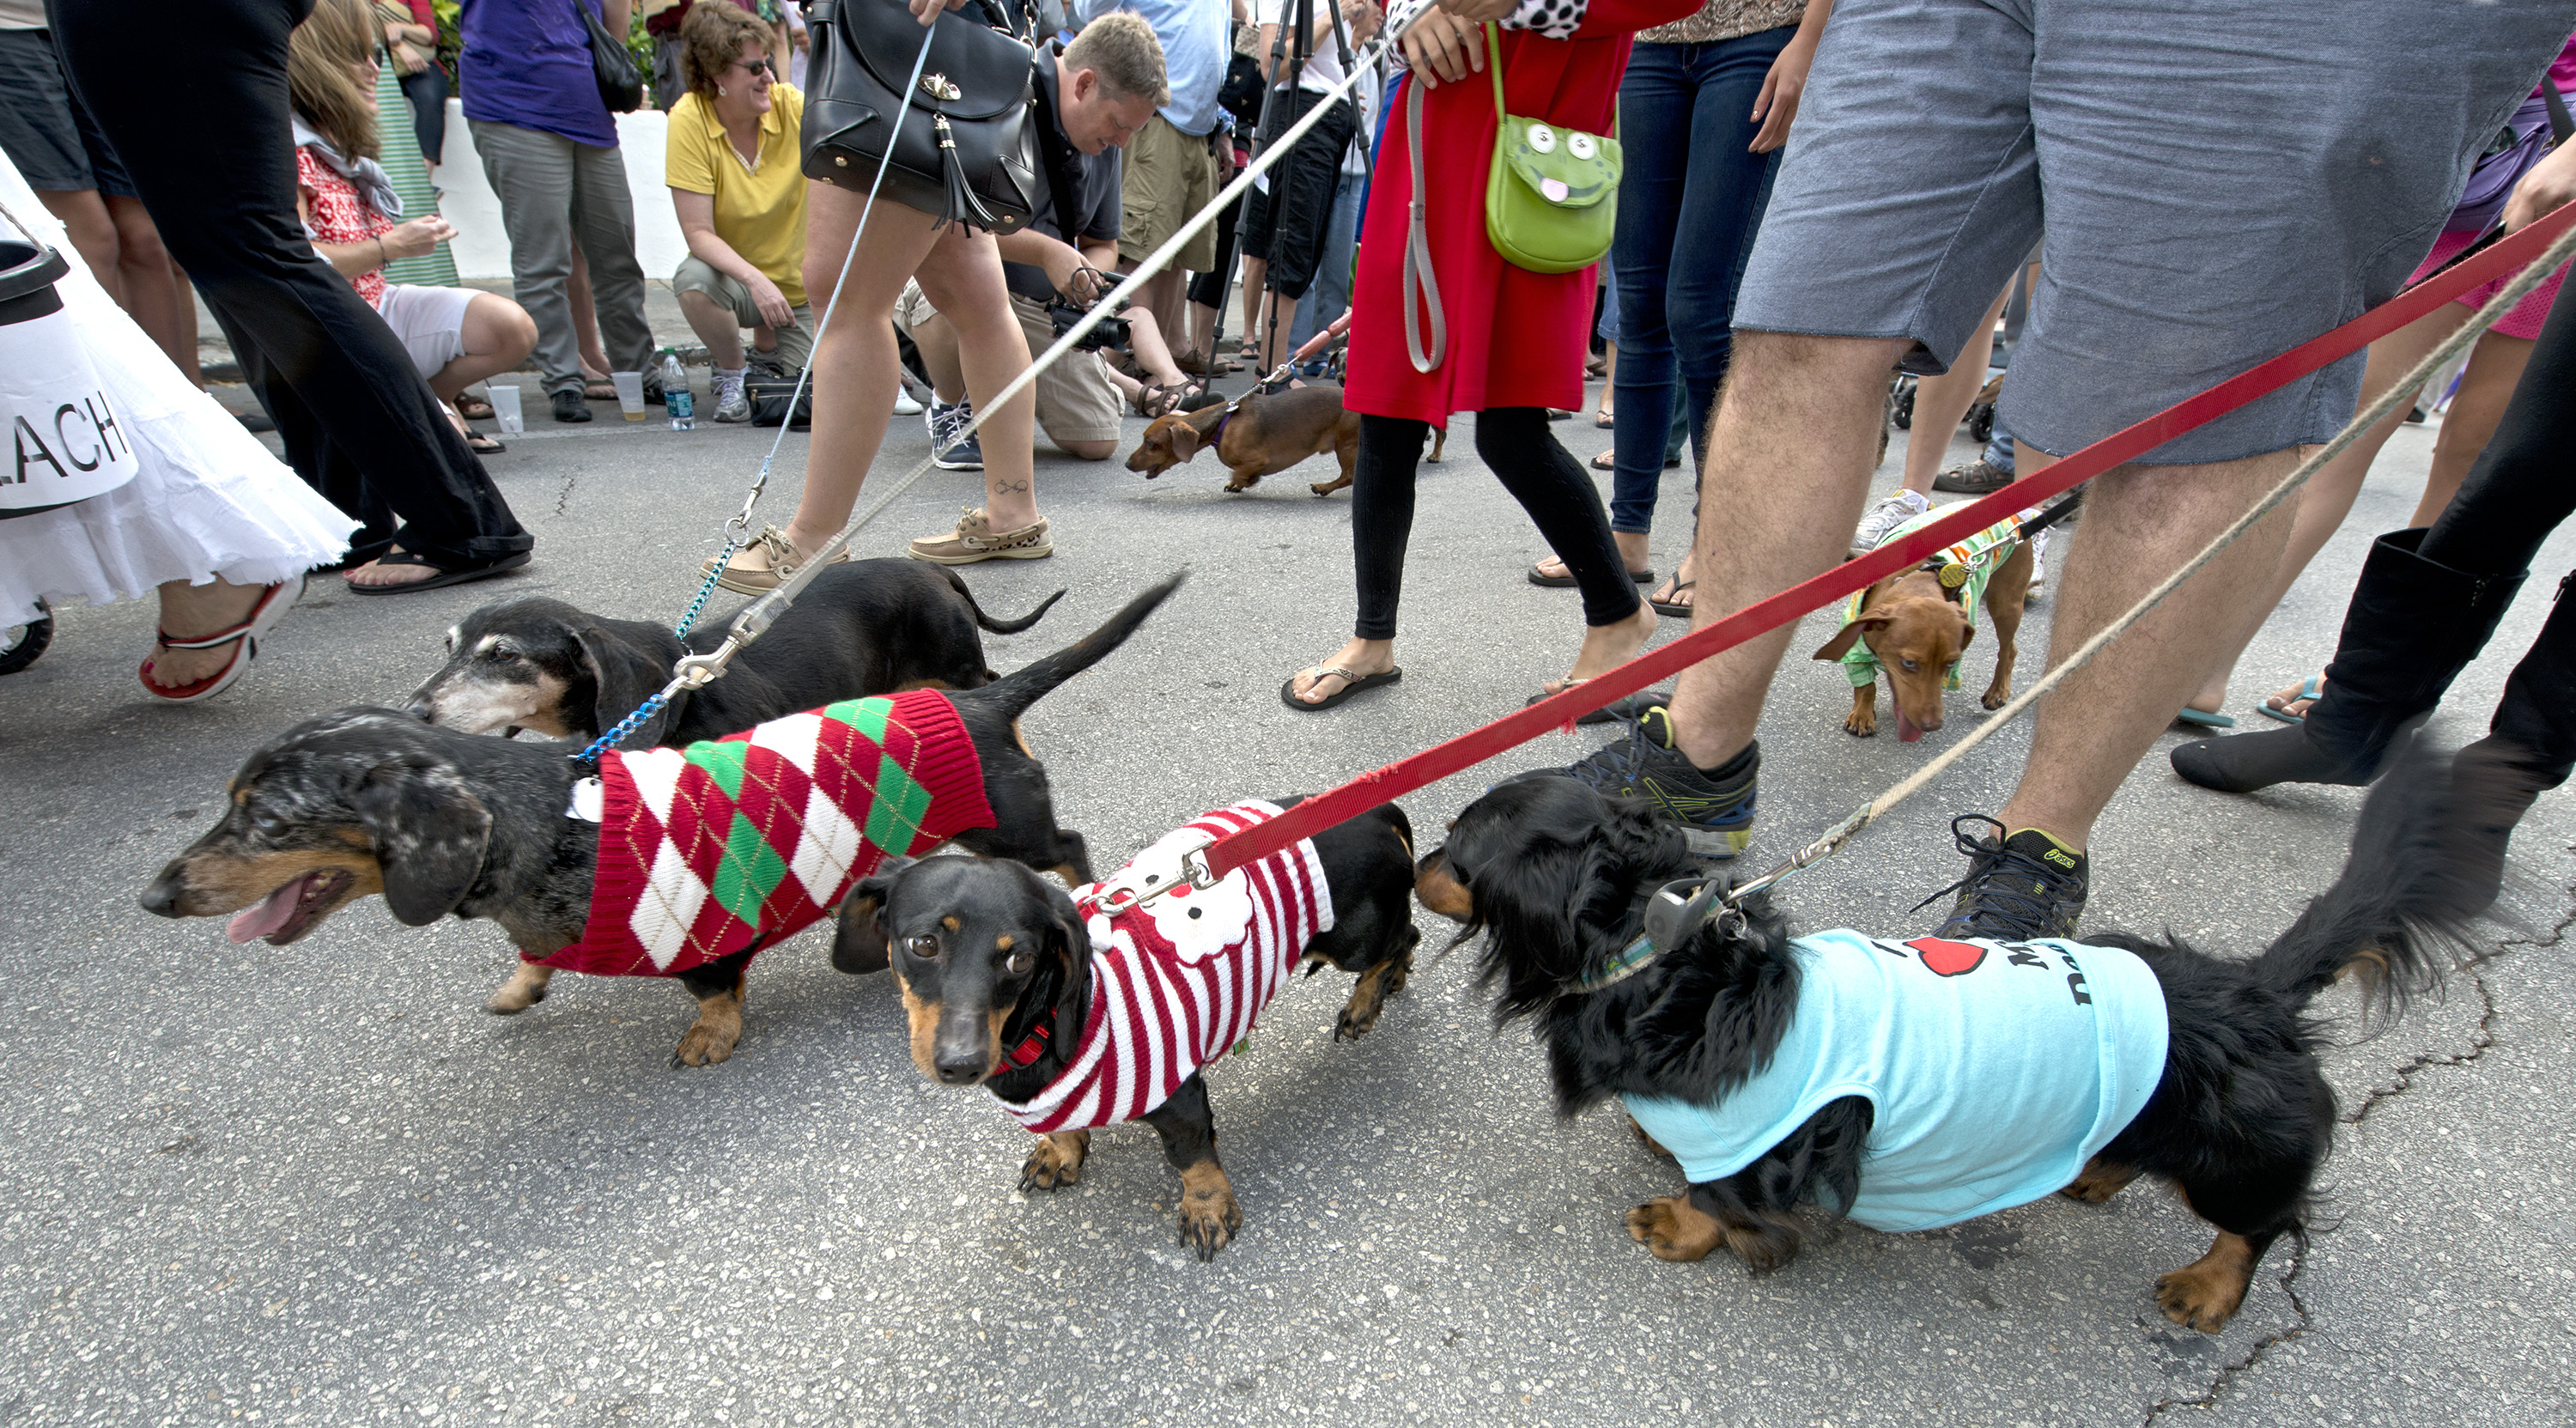 Dachshunds and their owners parade in Key West, Fla., during the Key West Dachshund Walk. The annual New Year's Eve tradition attracted almost 200 of the short-legged, long-bodied canines.